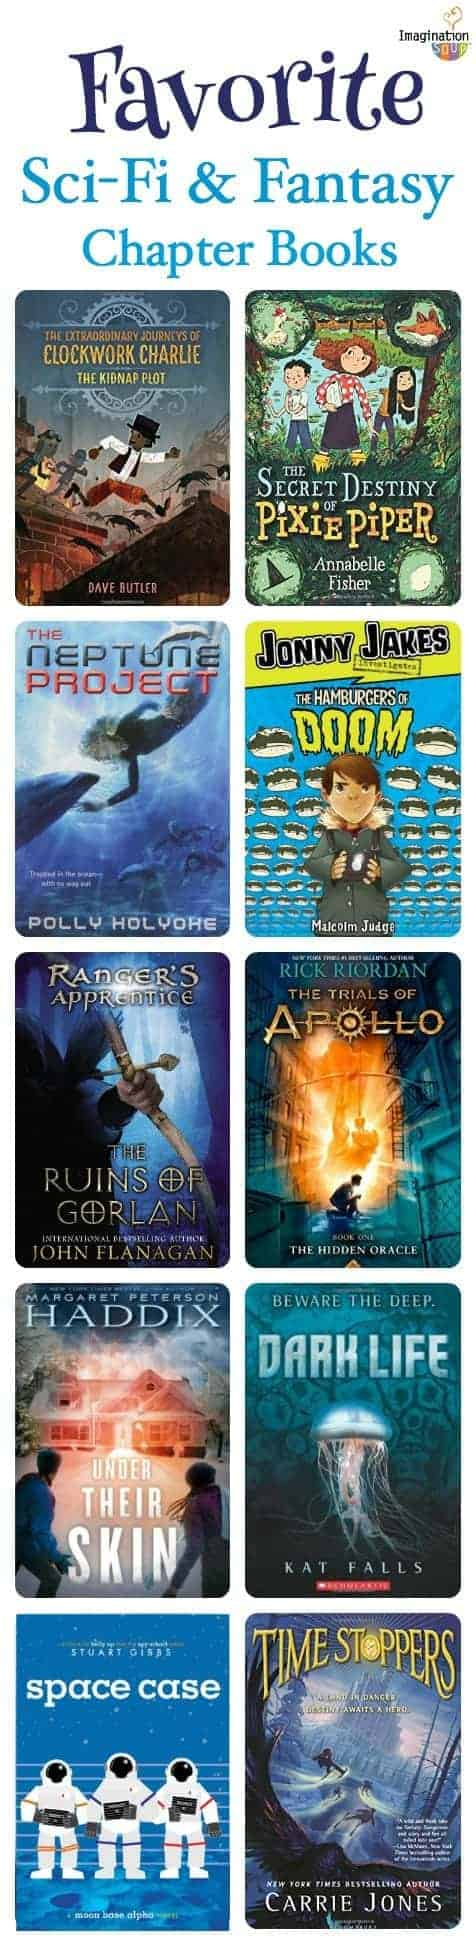 new favorite science fiction and fantasy chapter books for kids